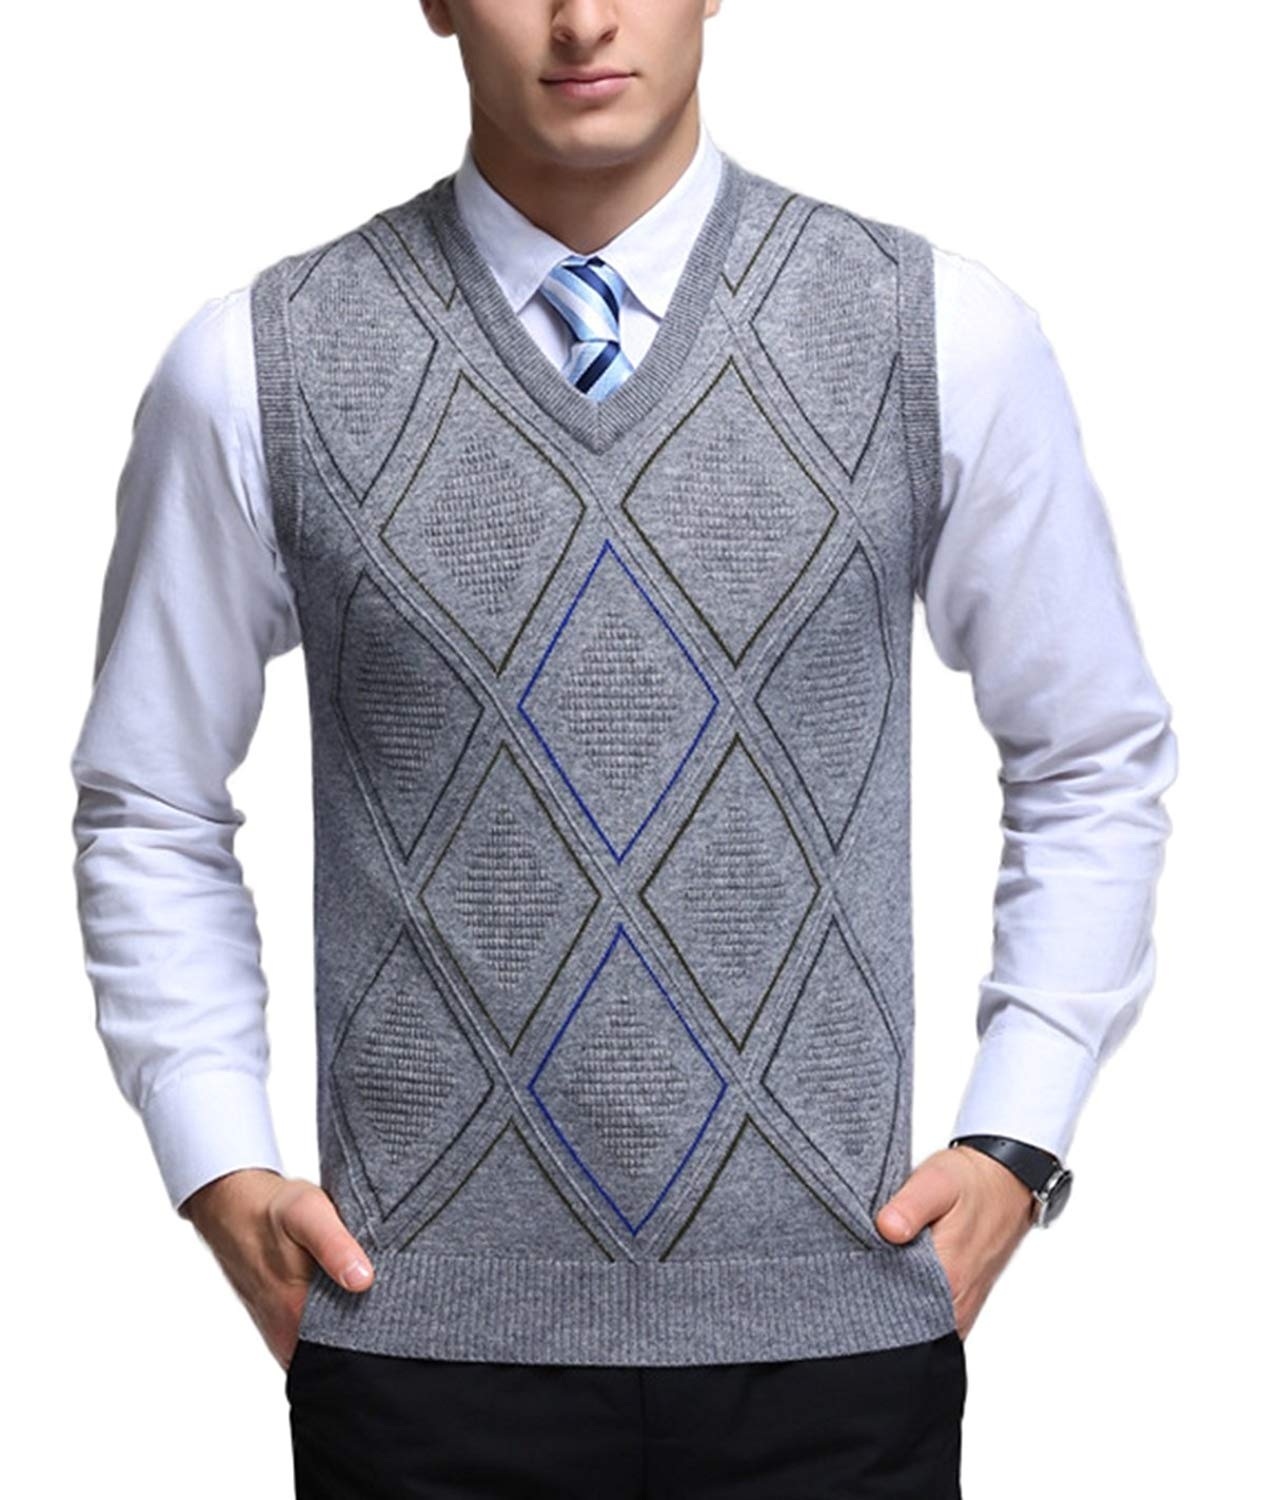 9a689934ea0fb5 Get Quotations · Men s V-Neck Argyle Pattern Sweater Vest Cardigan Knitted  Waistcoat